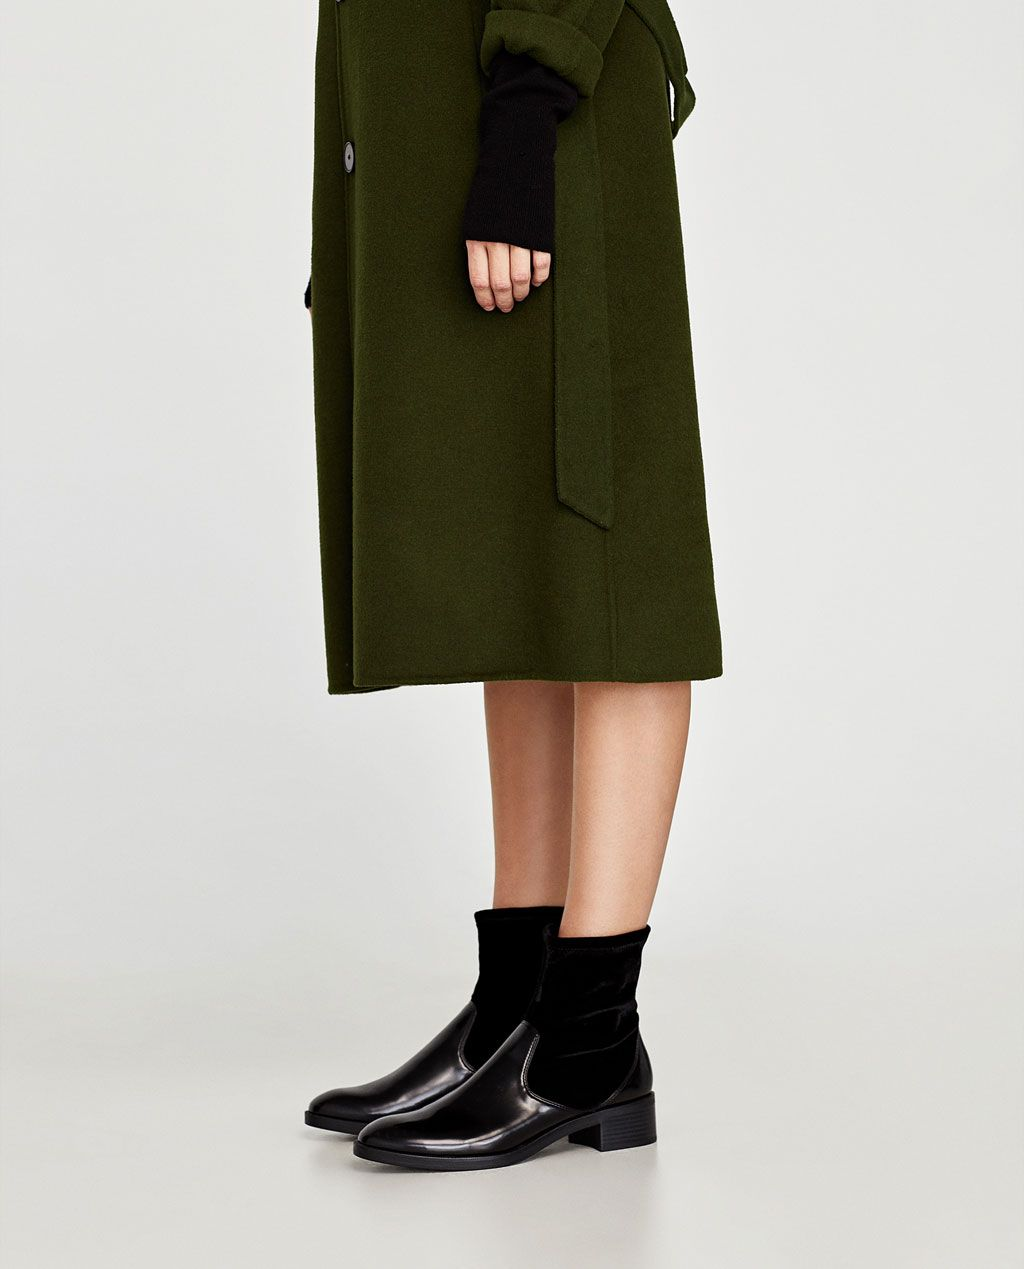 16c0e7610ba Image 4 of CONTRASTING VELVET ANKLE BOOTS from Zara   Shoes ...